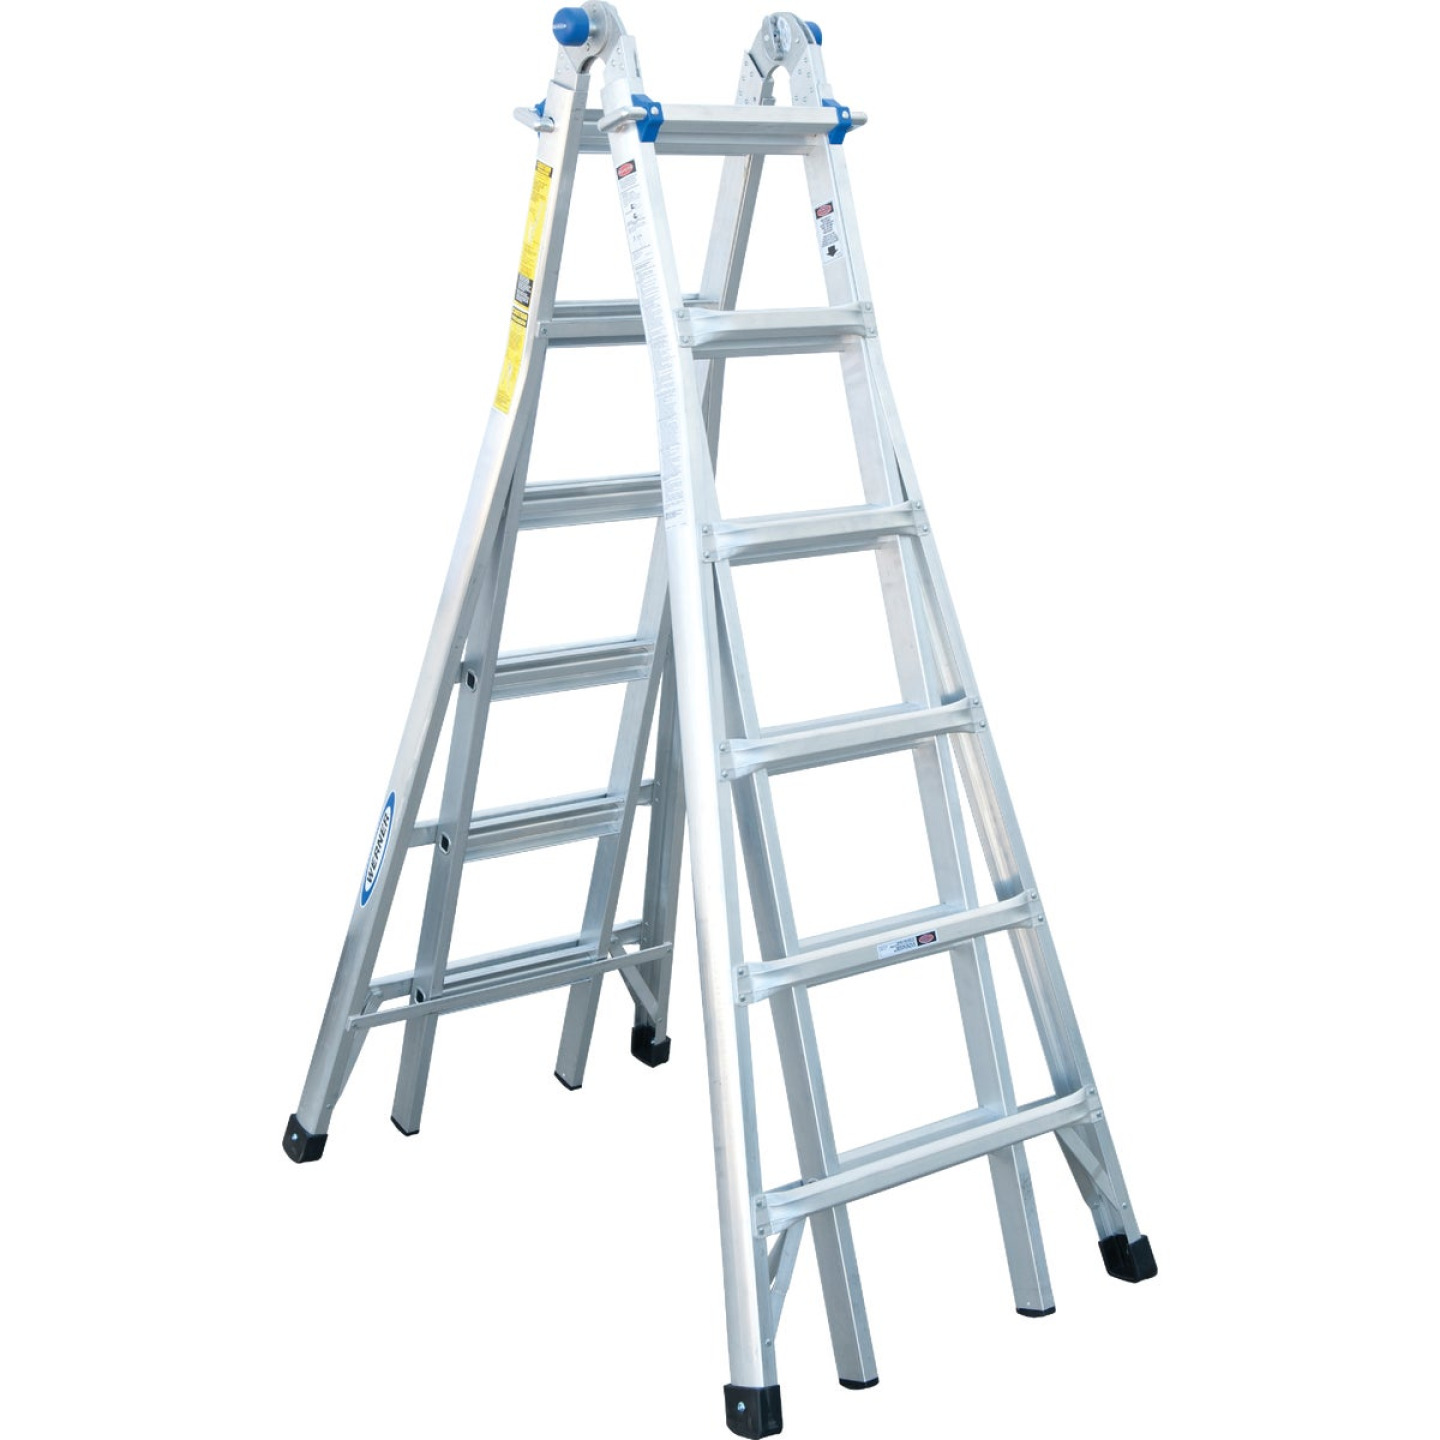 Werner 26 Ft. Aluminum Multi-Position Telescoping Ladder with 300 Lb. Load Capacity Type IA Ladder Rating Image 11